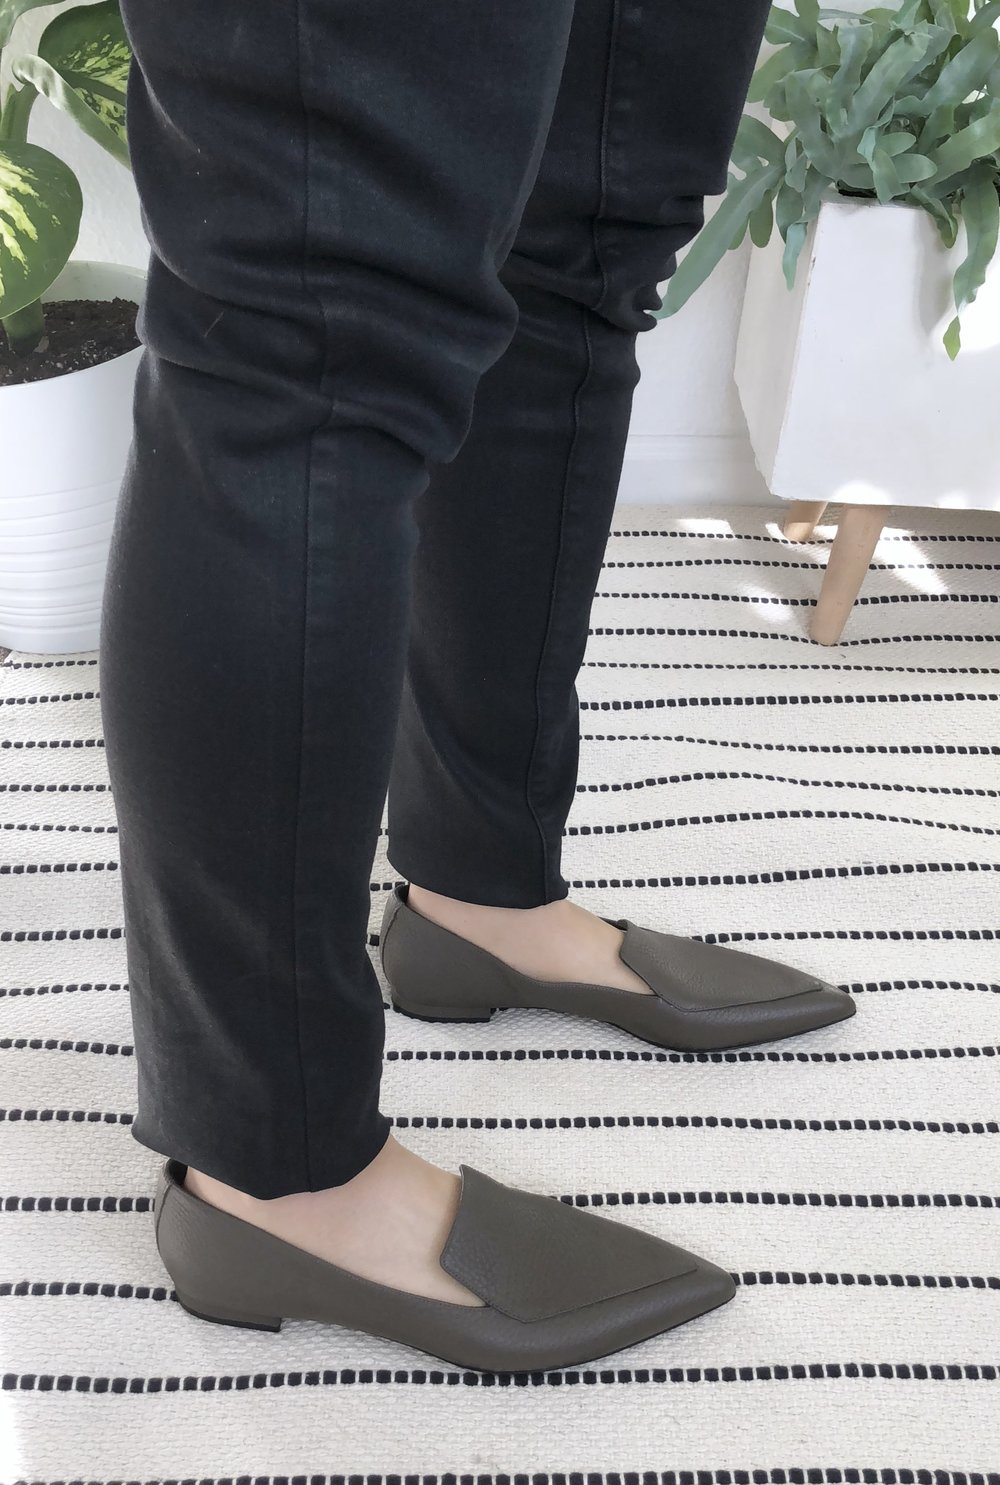 Everlane Review Boss Loafer